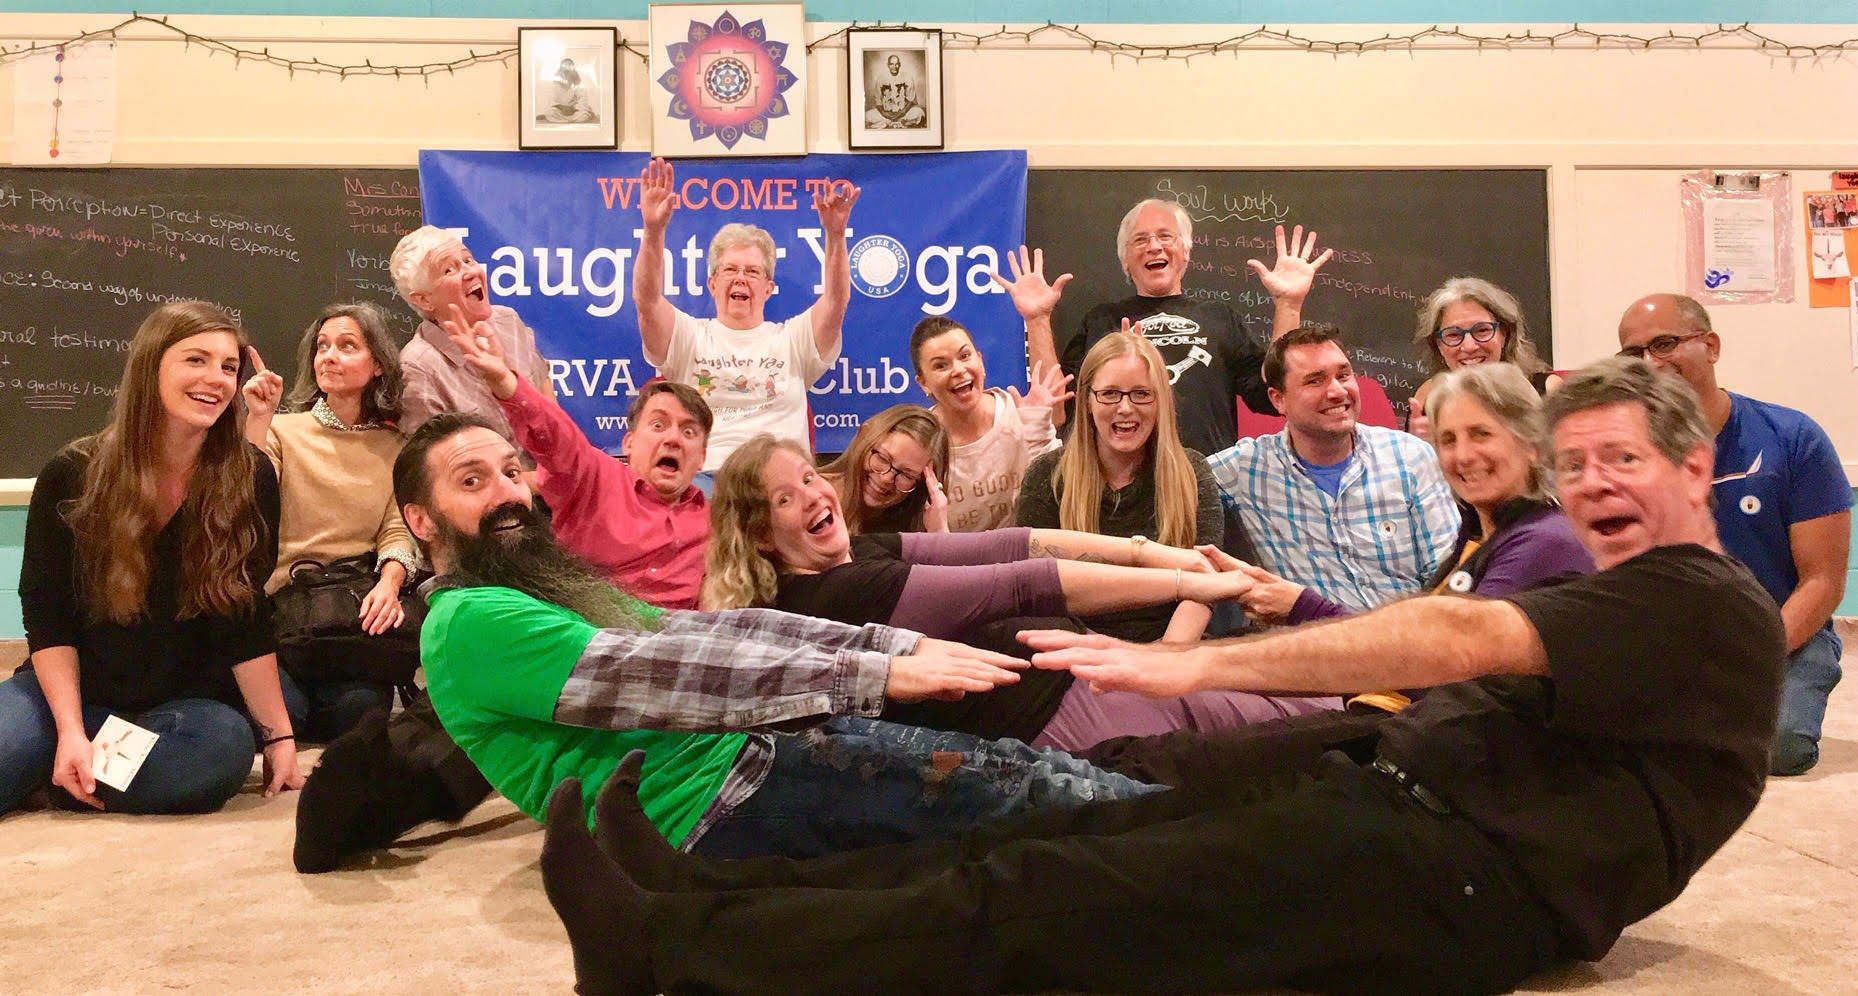 richmond-virginia-laughter-club-yoga.jpg